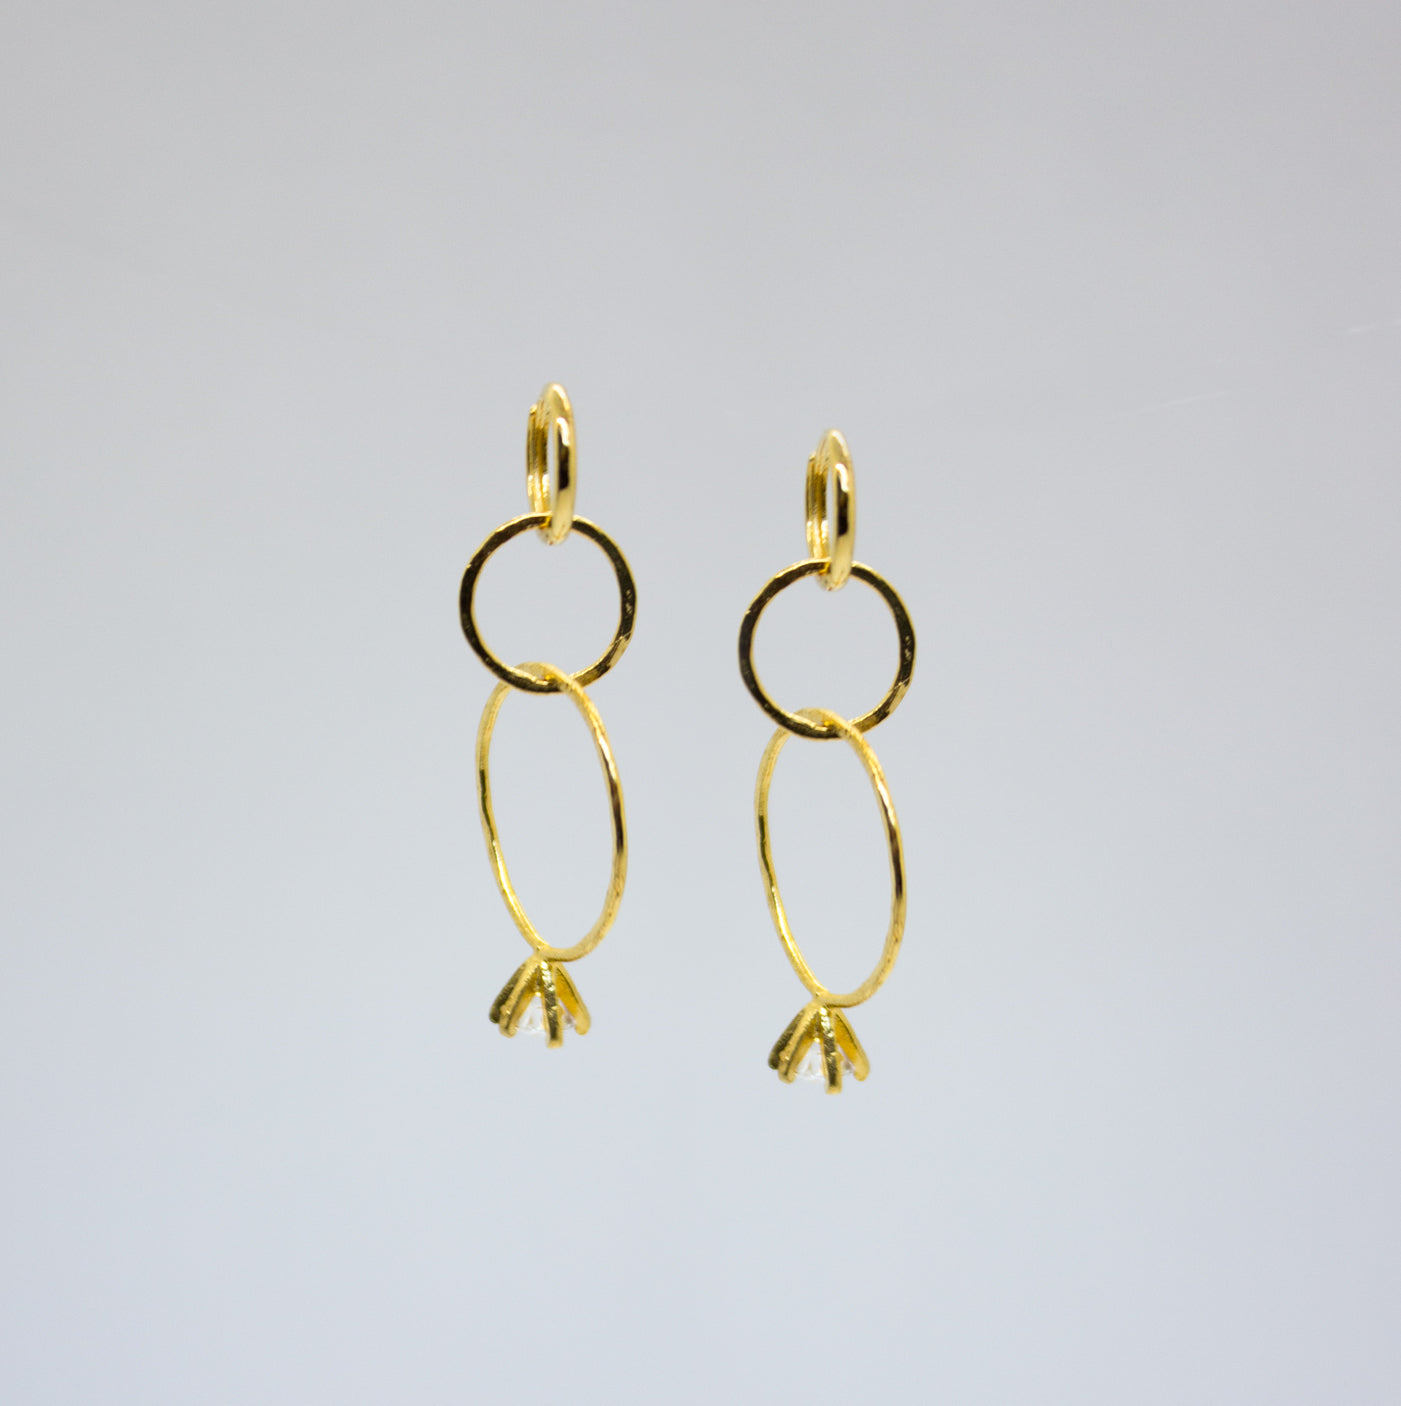 Earrings with Three Hoops and a Small Diamond